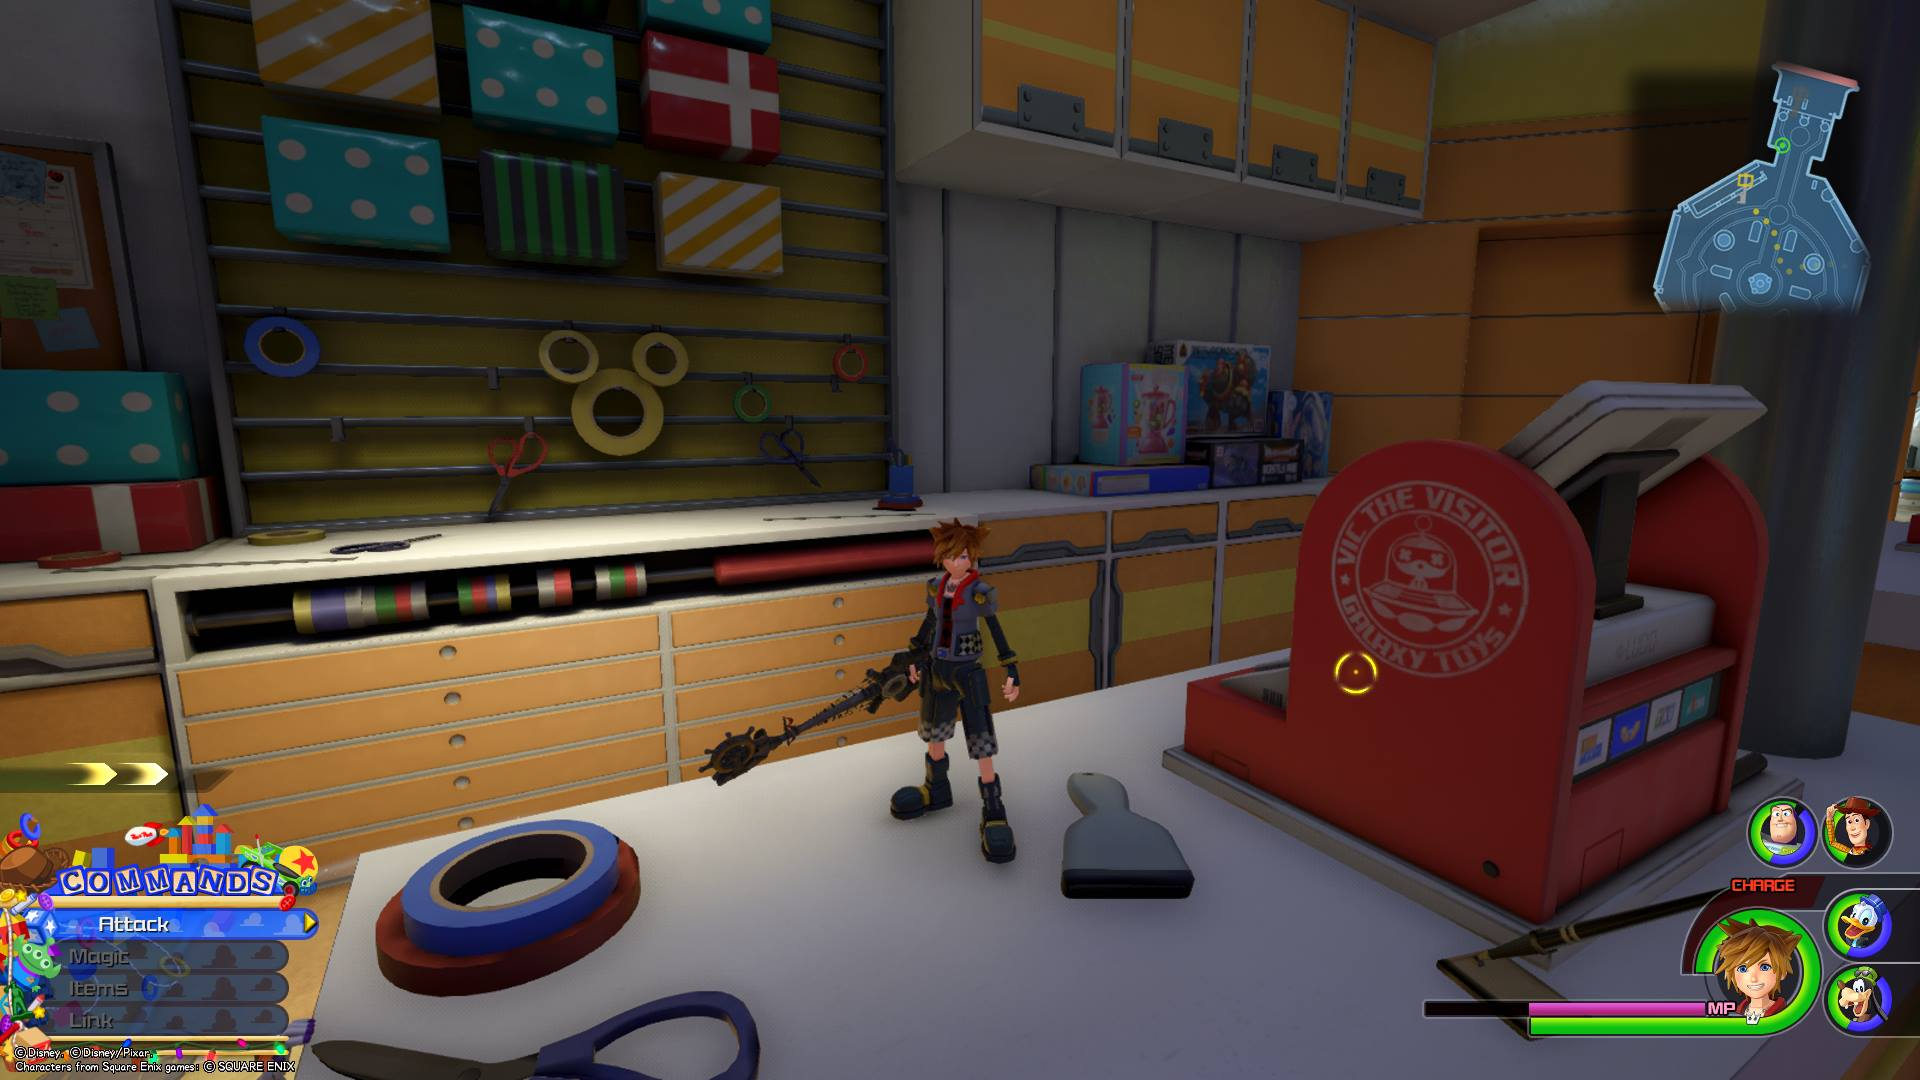 Emblem 6 - Toy Box Lucky Emblems in Kingdom Hearts 3